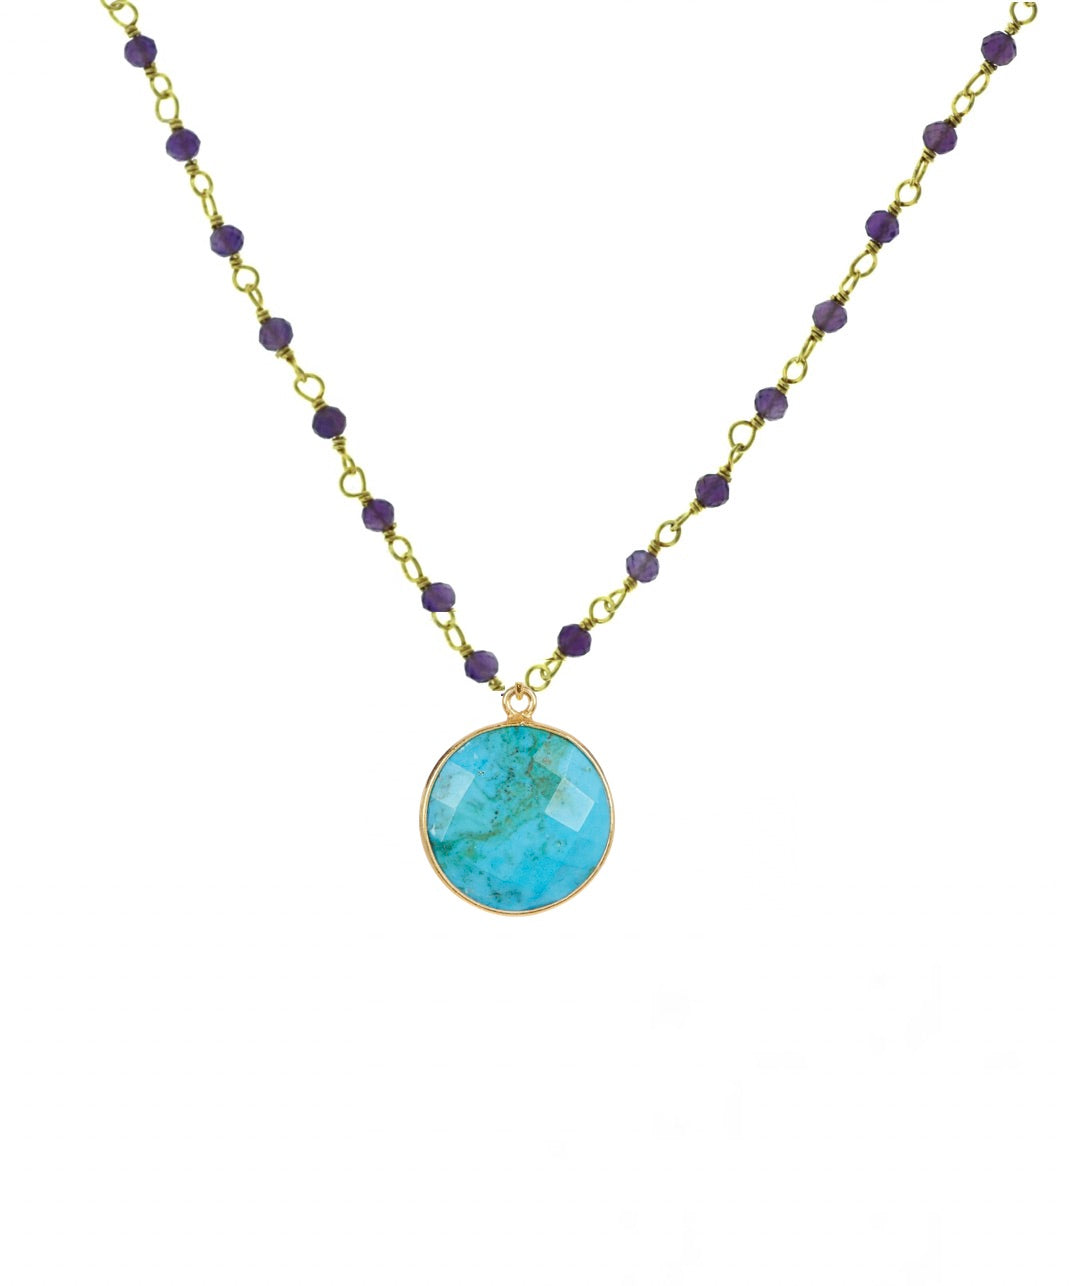 18k Gold Amethyst & Turquoise Drop Necklace